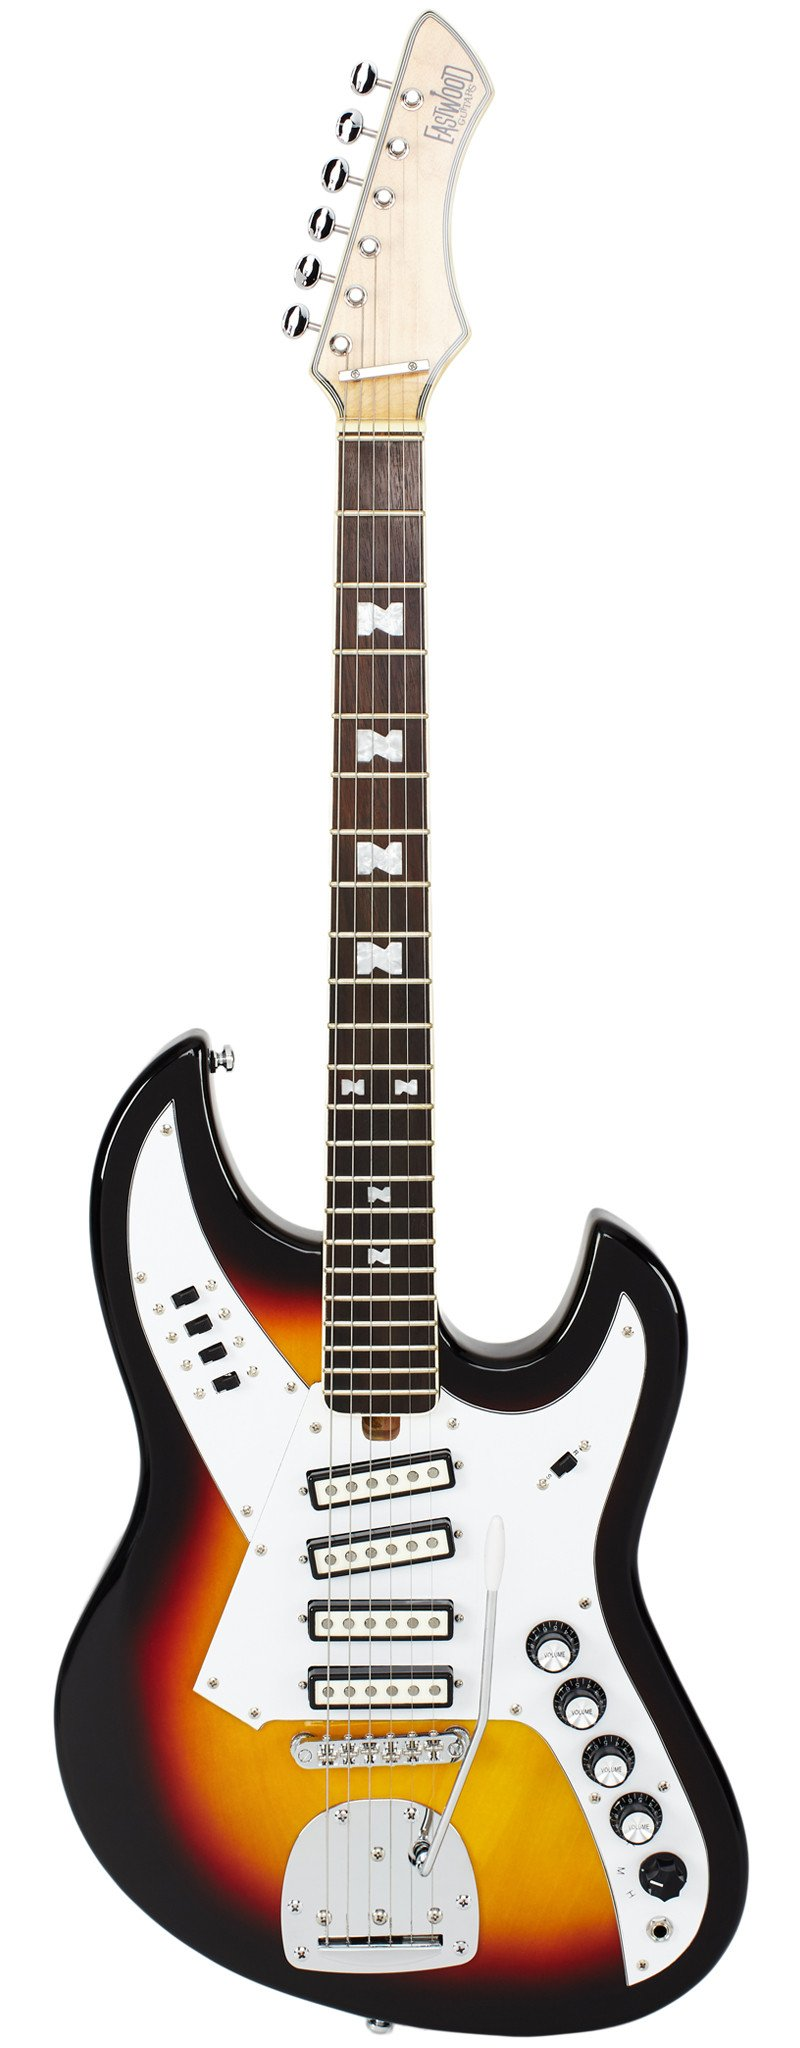 Eastwood Guitars NormaEG5214 Sunburst Full Front